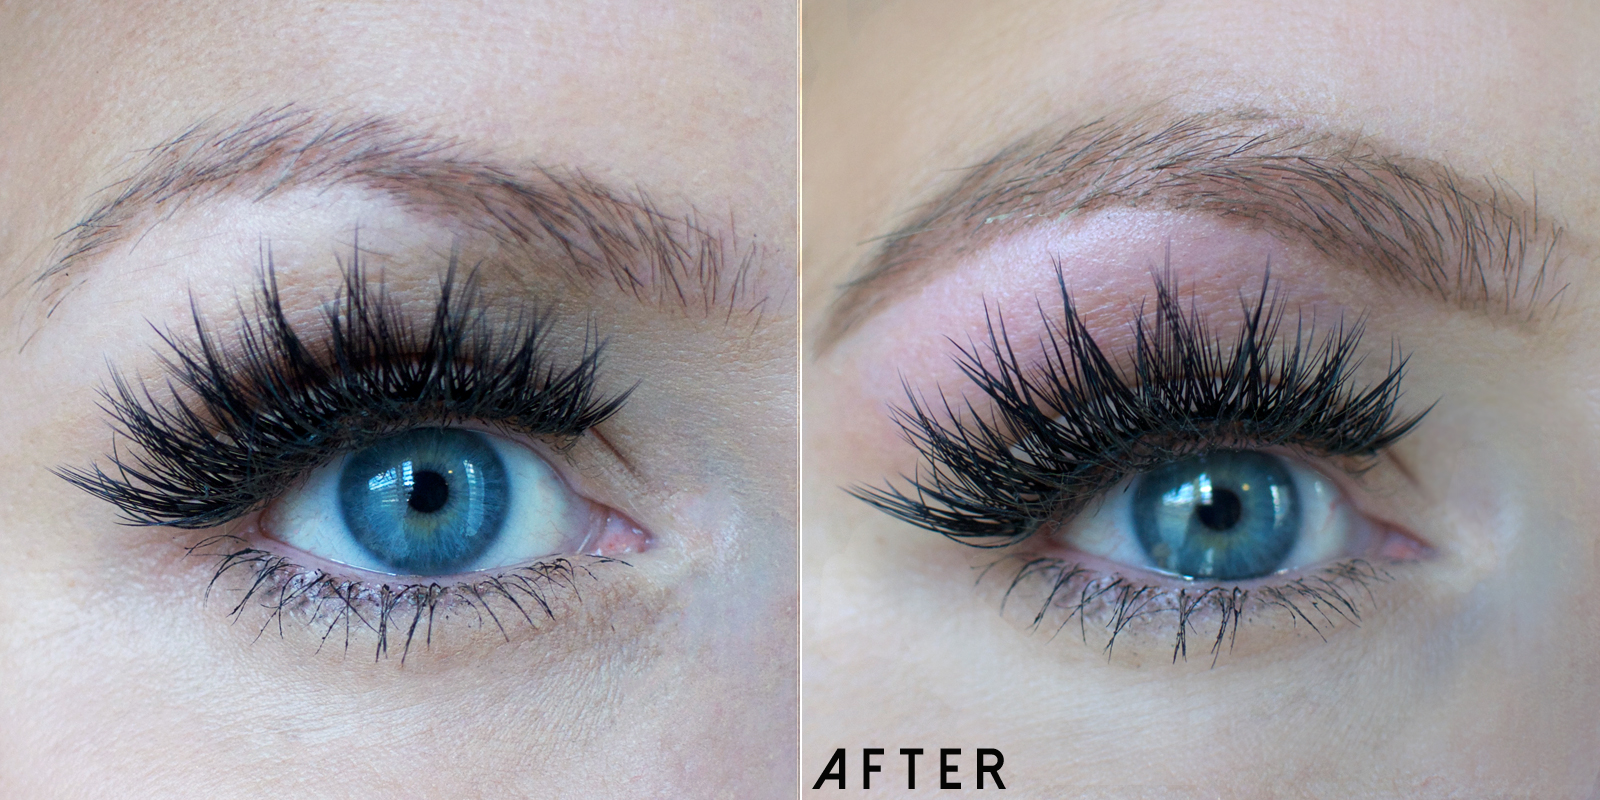 How to shape and wax your own eyebrows | How to Wax Your Eyebrows at Home by Popular Utah beauty blogger, Kara Metta: before and after image of waxed eyebrows.